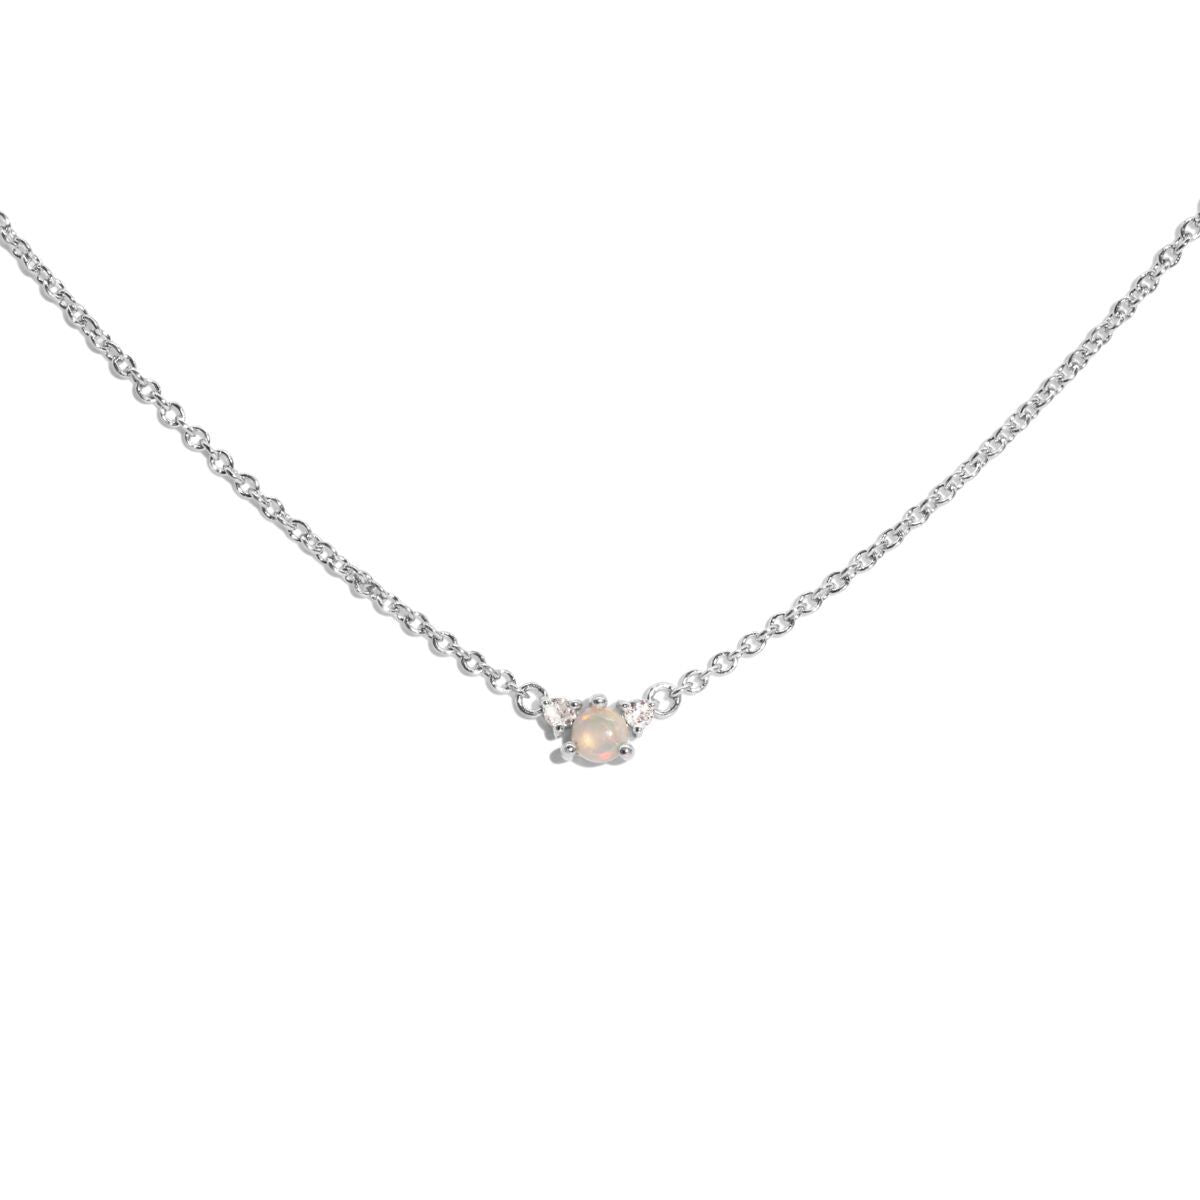 The Silver Opal & Diamond Trio Necklace